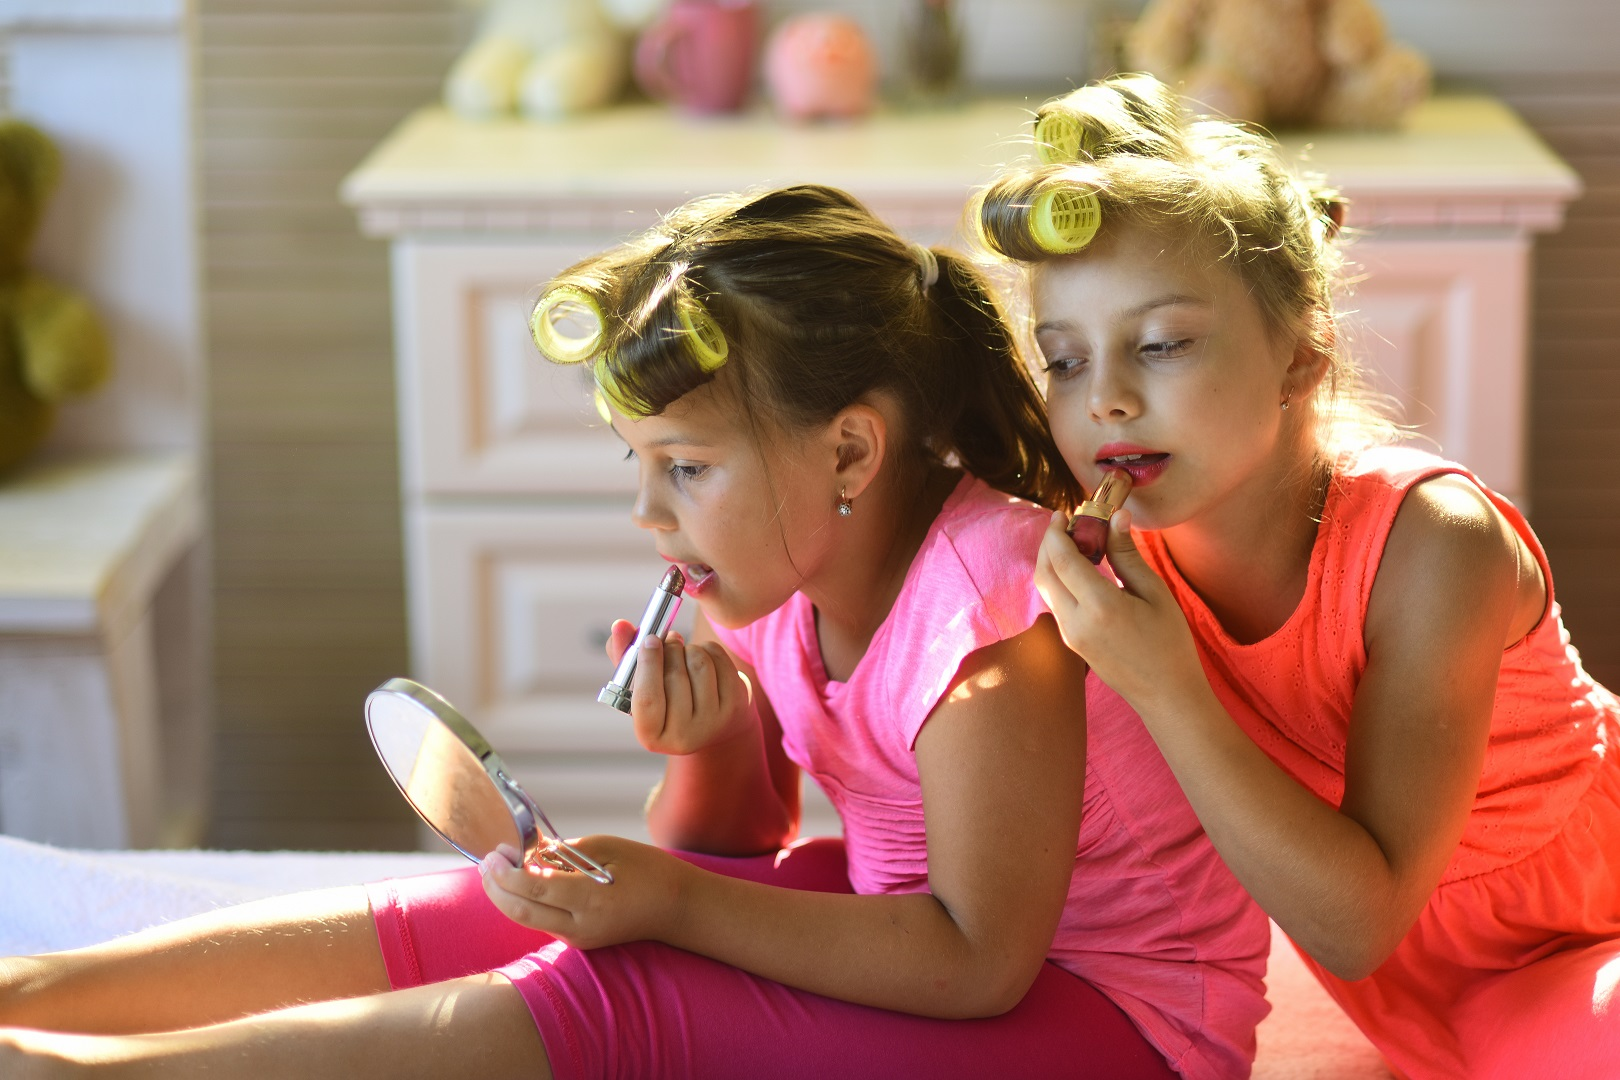 Two Young Girls Wearing Hair Rollers Putting On Lipstick Looking in Mirror